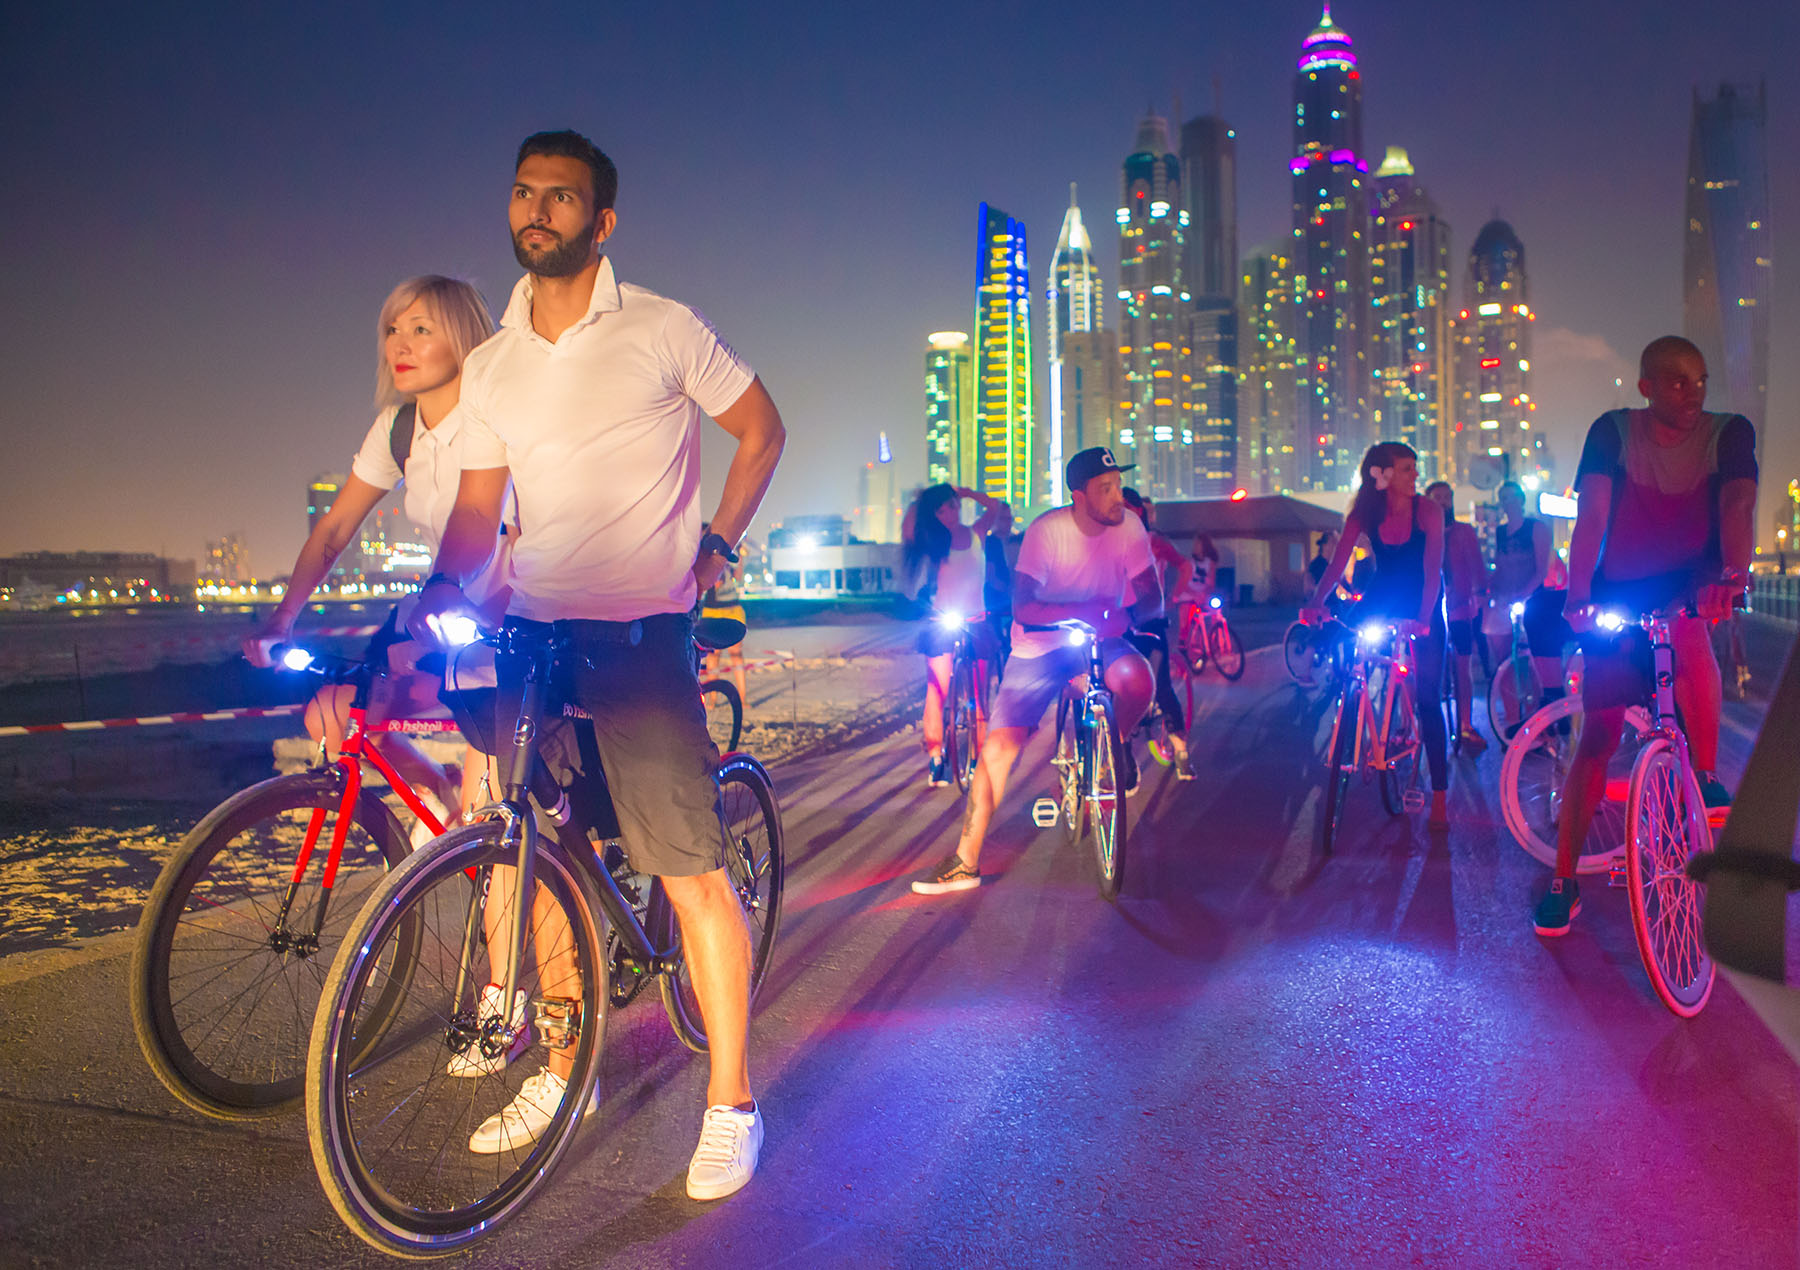 Influencers ready for the PUMA bike ride event by Loesje Kessels Fashion Photographer Dubai